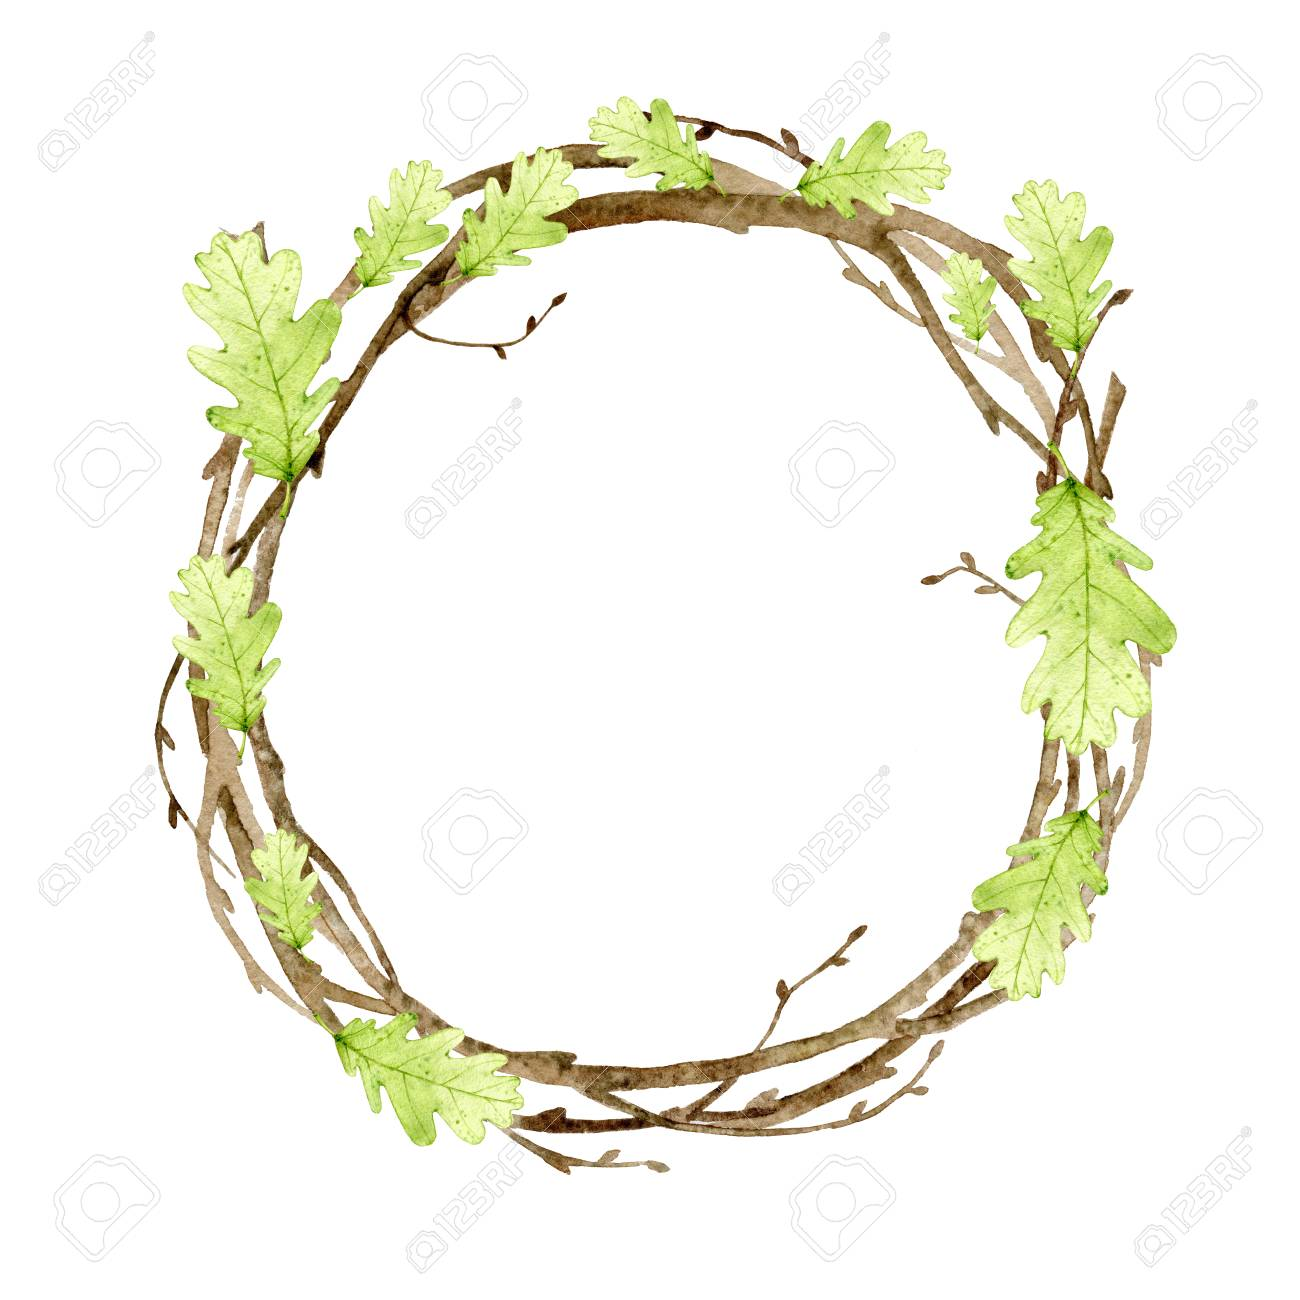 Watercolor Wreath With Spring Summer Leaves And Branches Frame